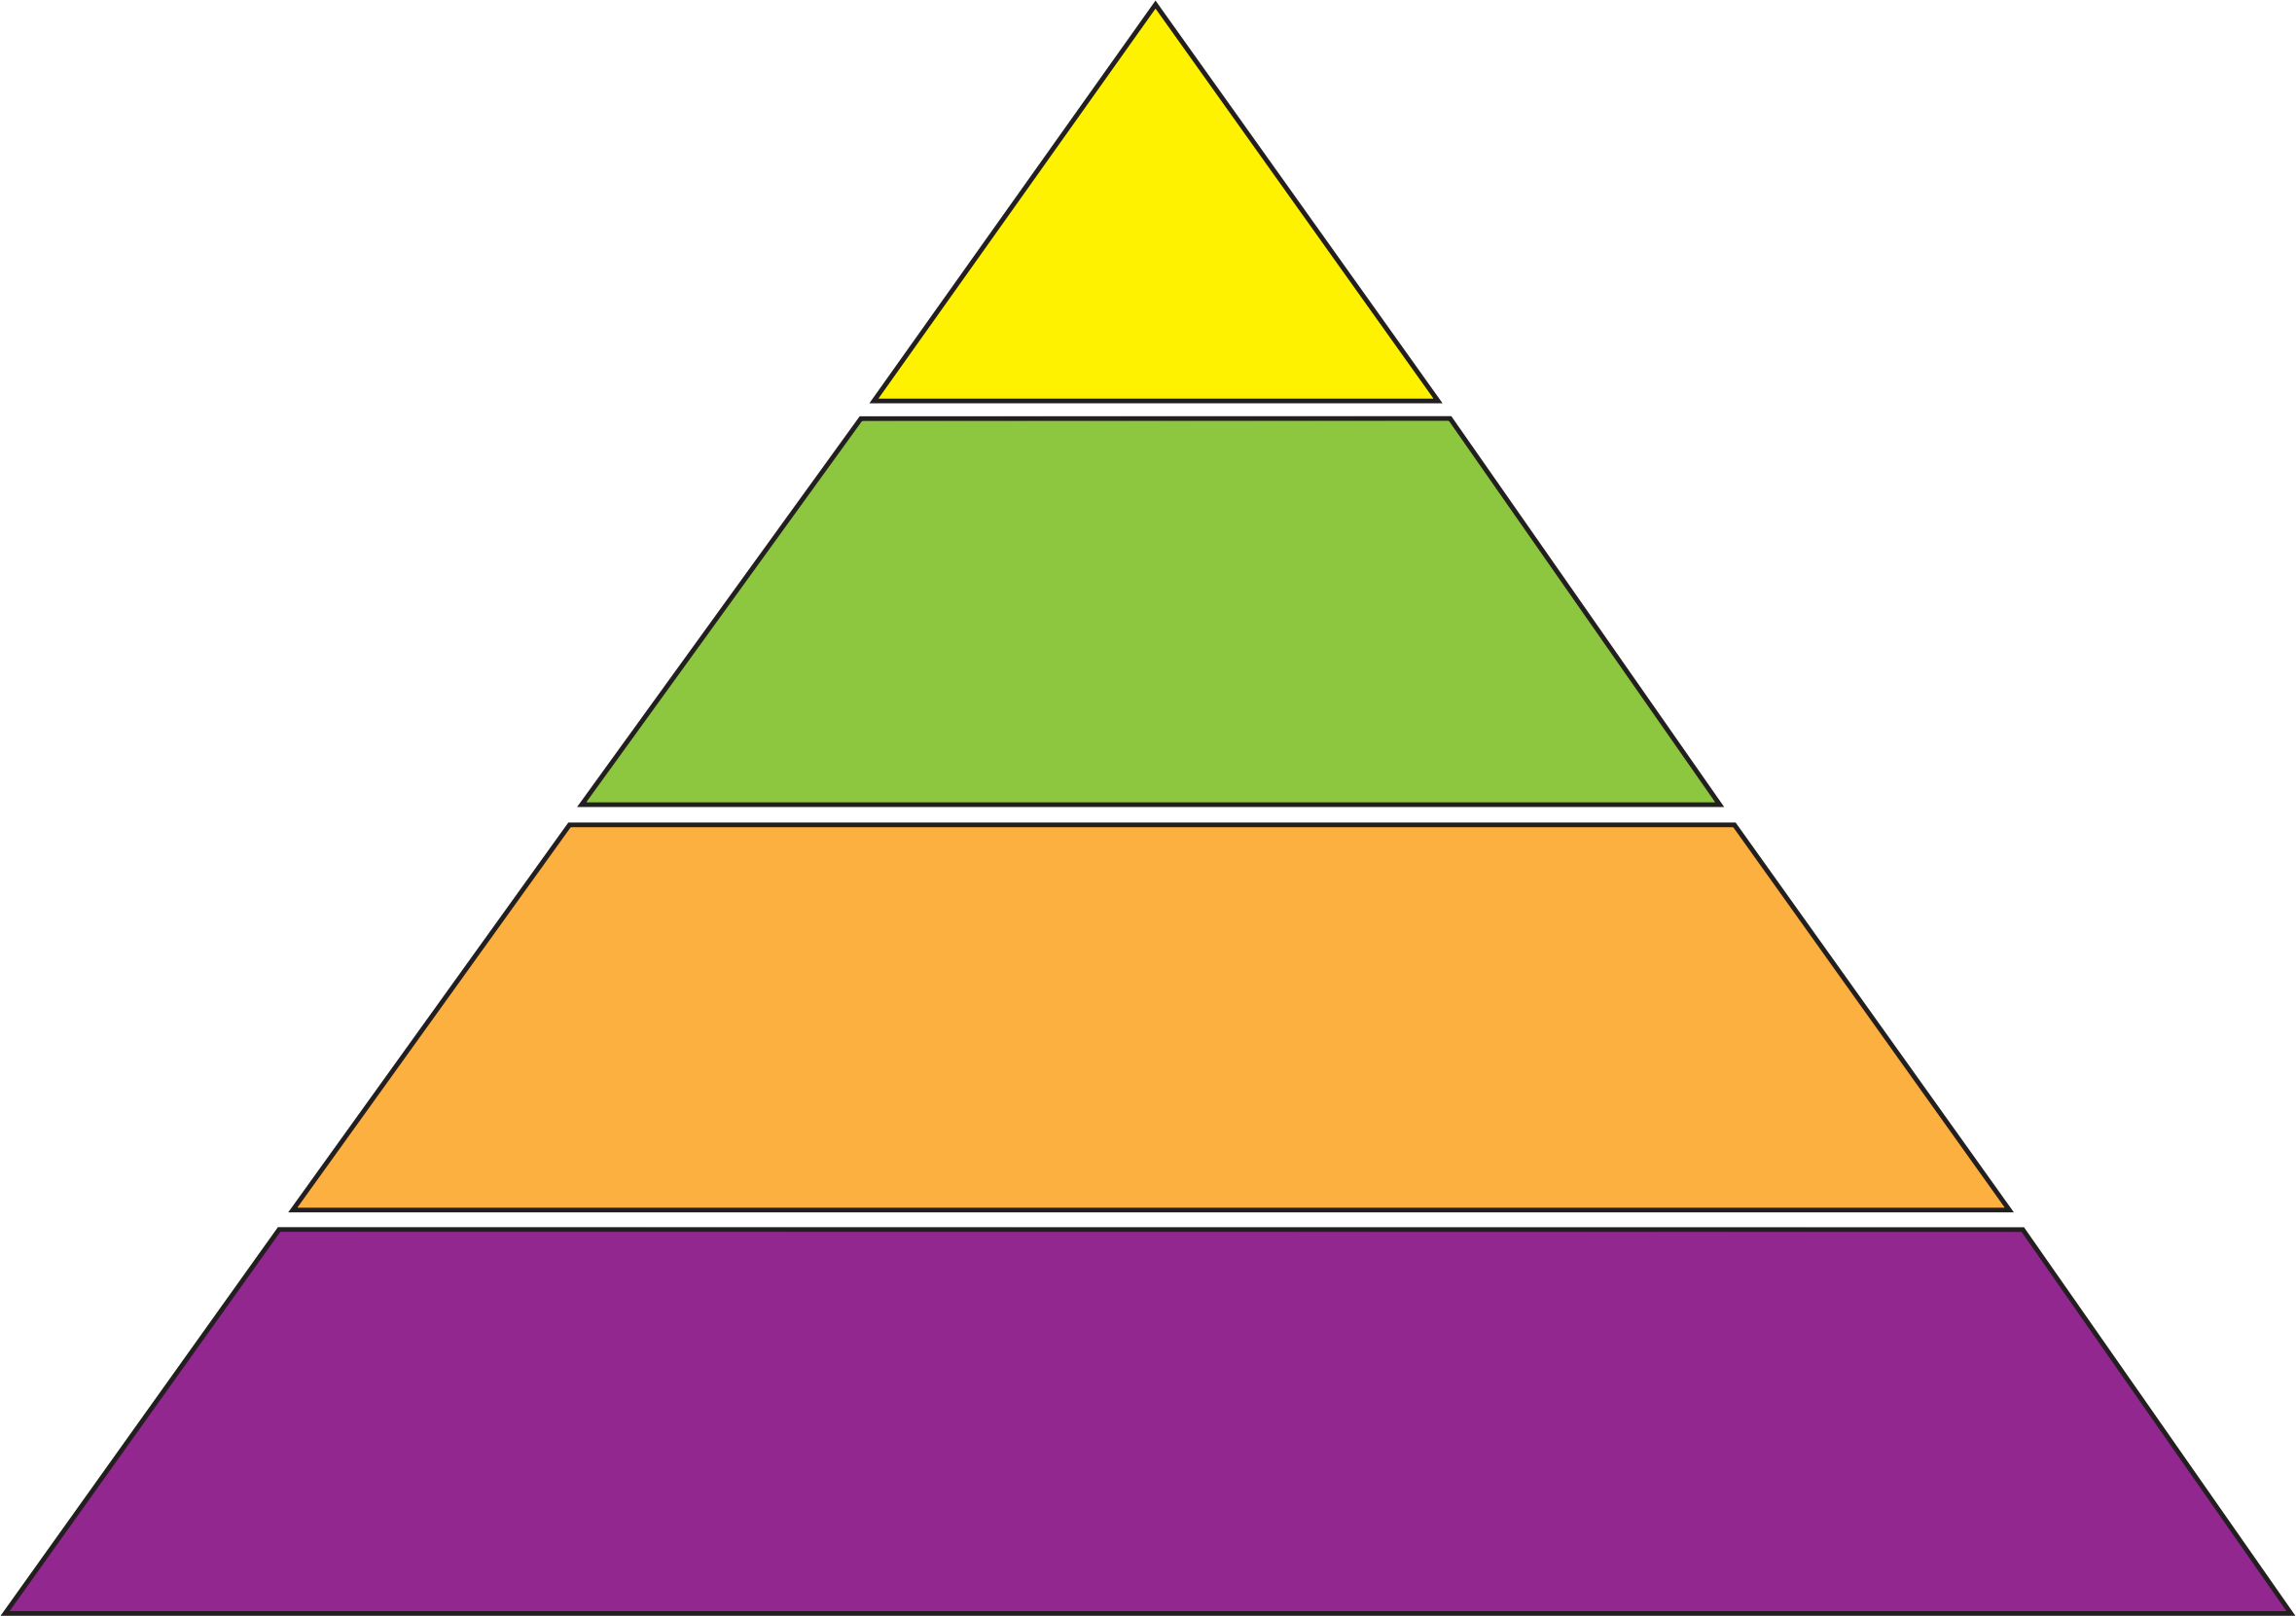 Pyramid clipart #13, Download drawings